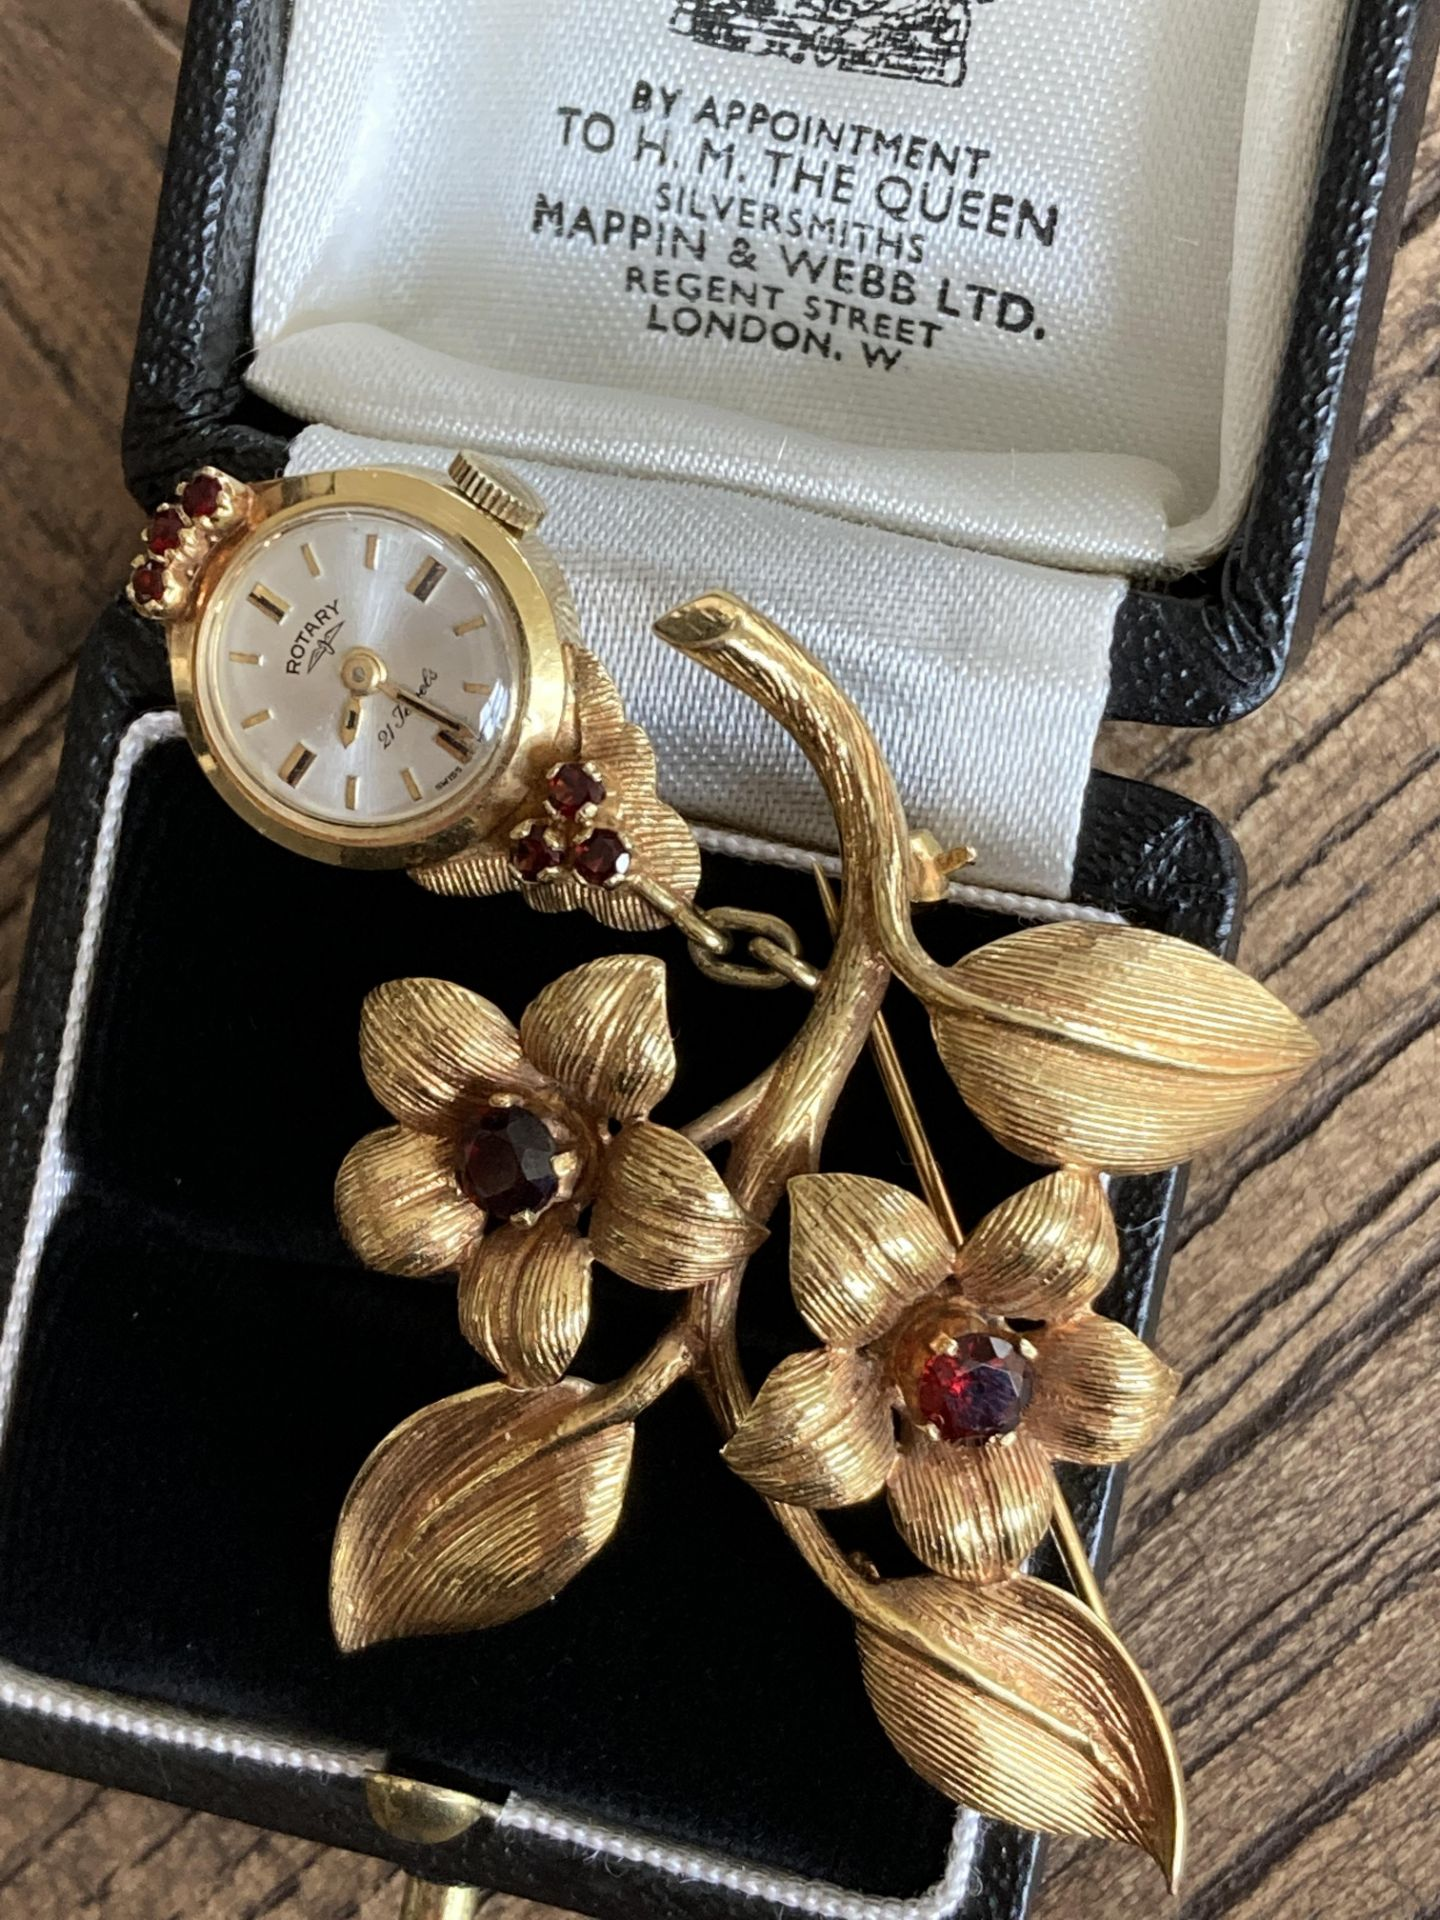 9K ROTARY TIMEPIECE BROOCH - FLOWER & LEAF DESIGN WITH GEM SETTING - Image 3 of 4